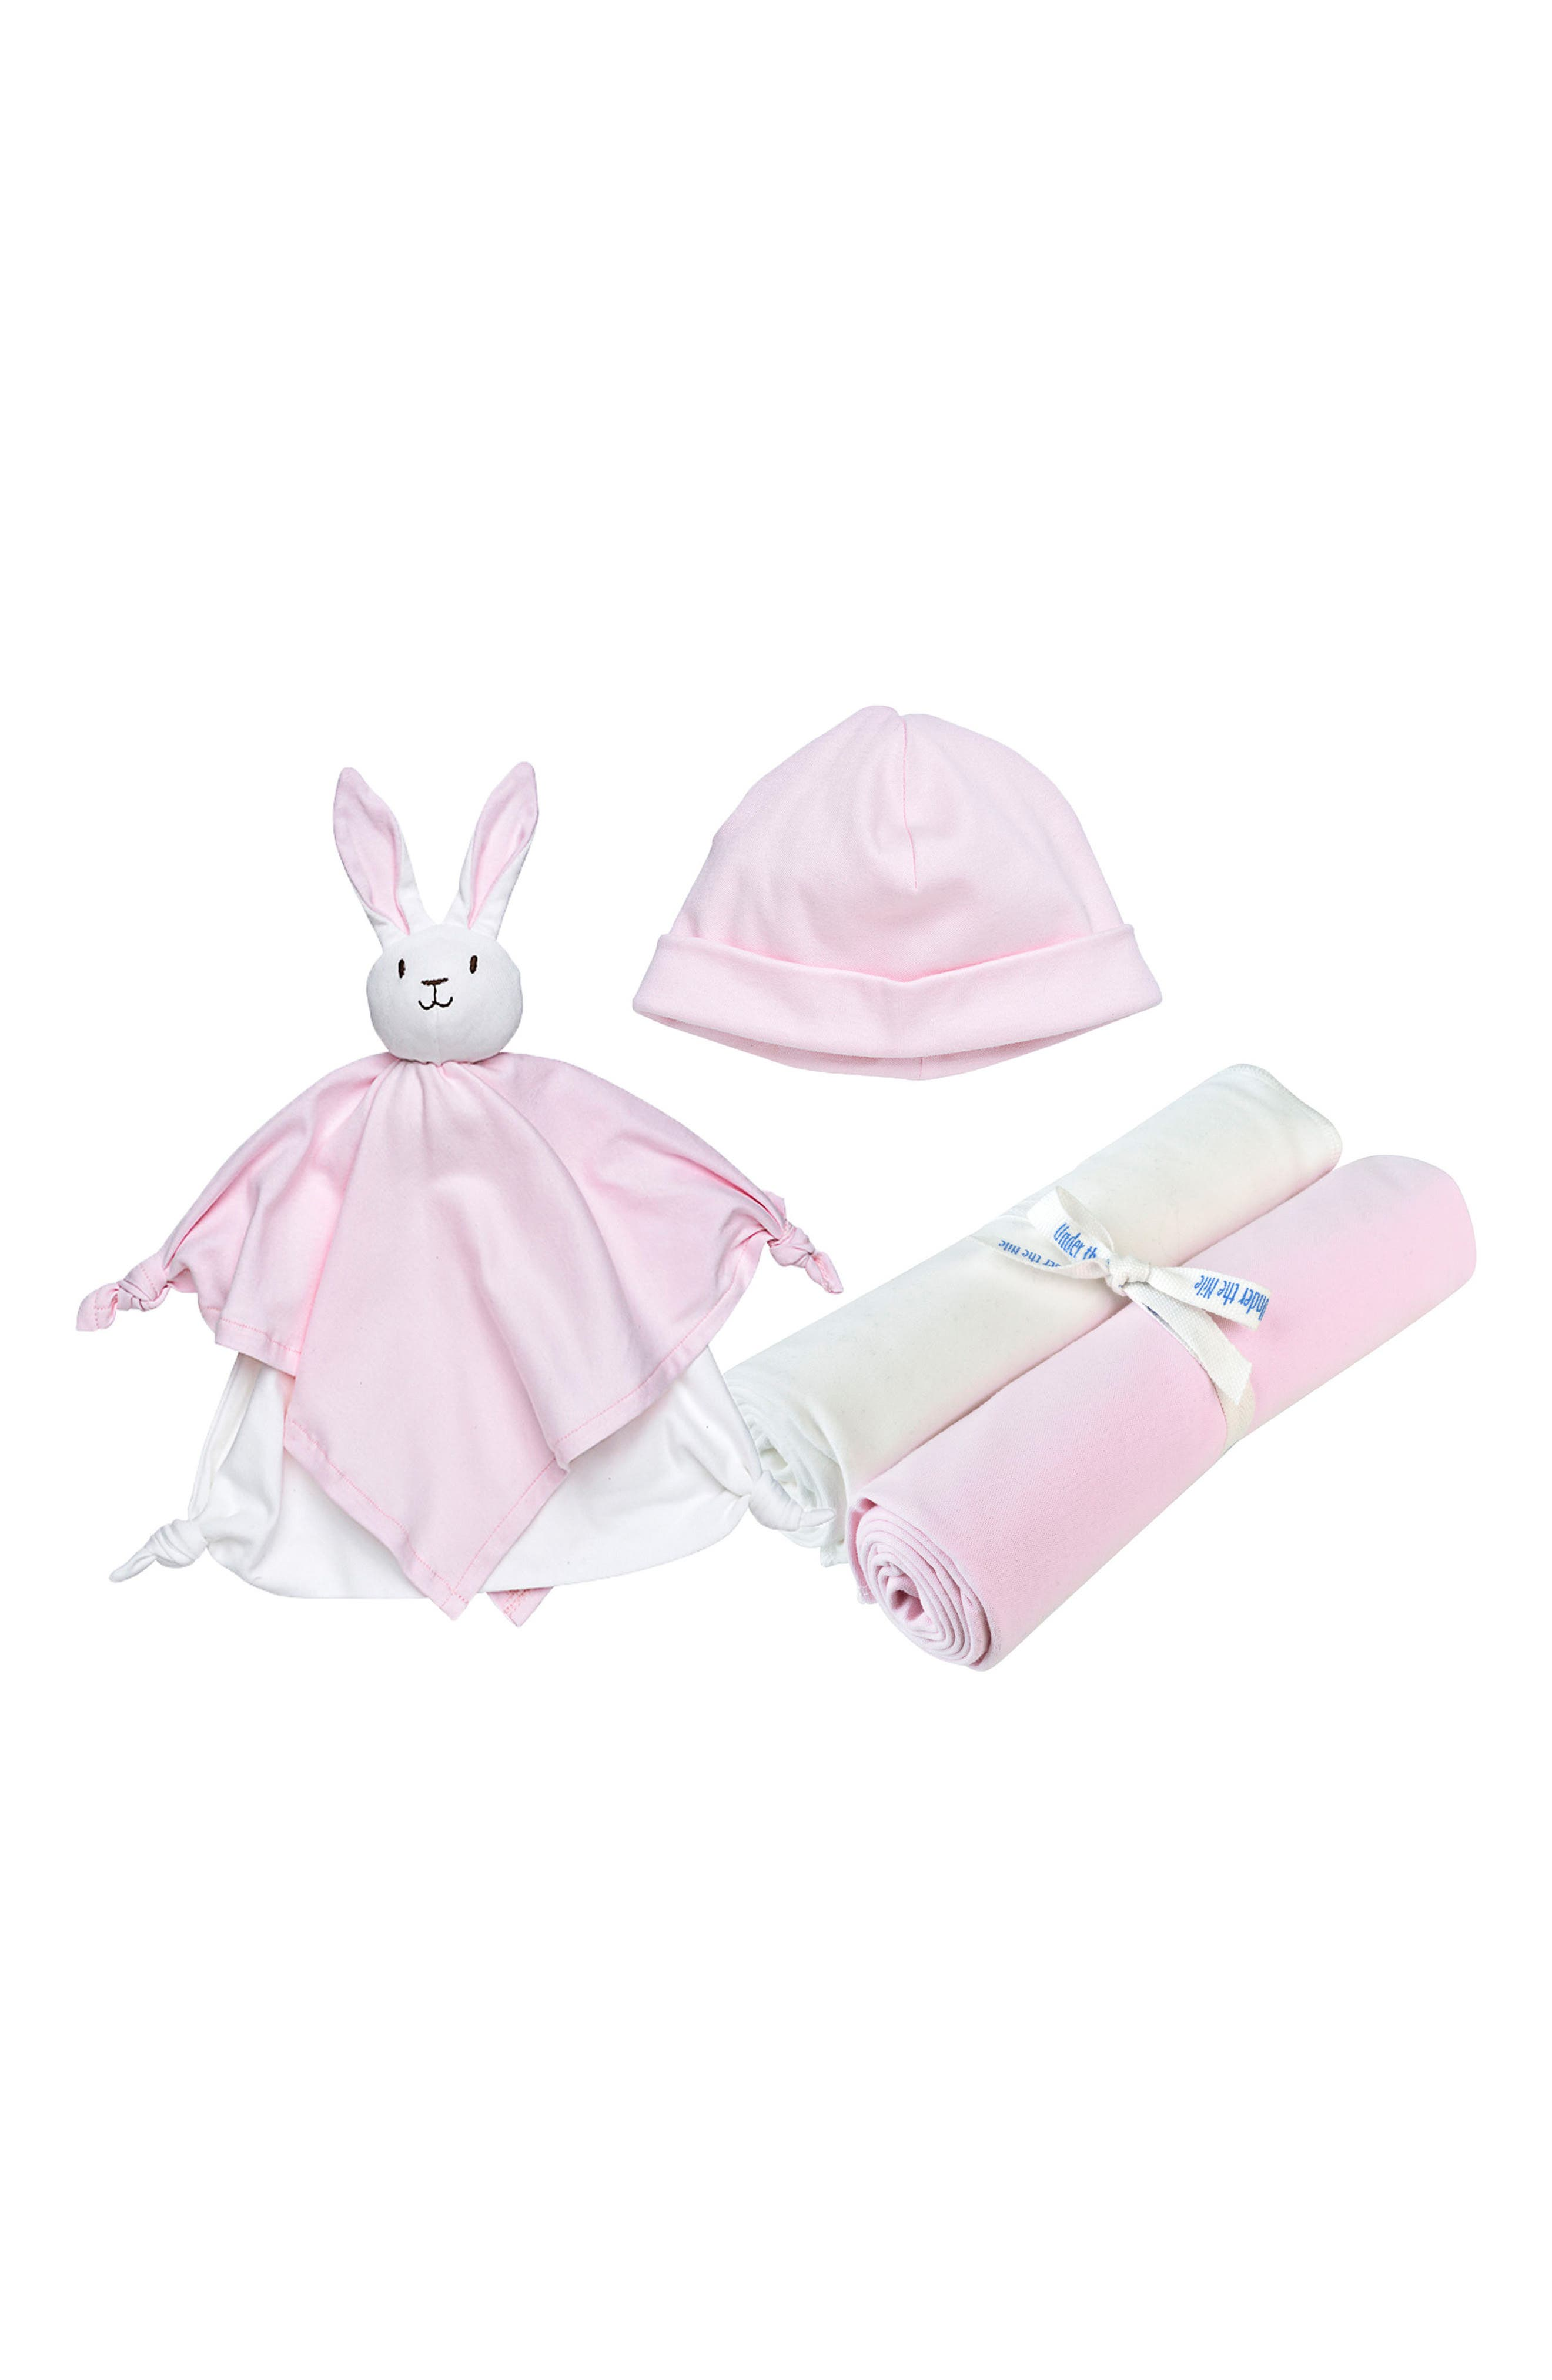 4-Piece Swaddle Blanket, Beanie & Rabbit Lovey Toy Set,                         Main,                         color, Pink